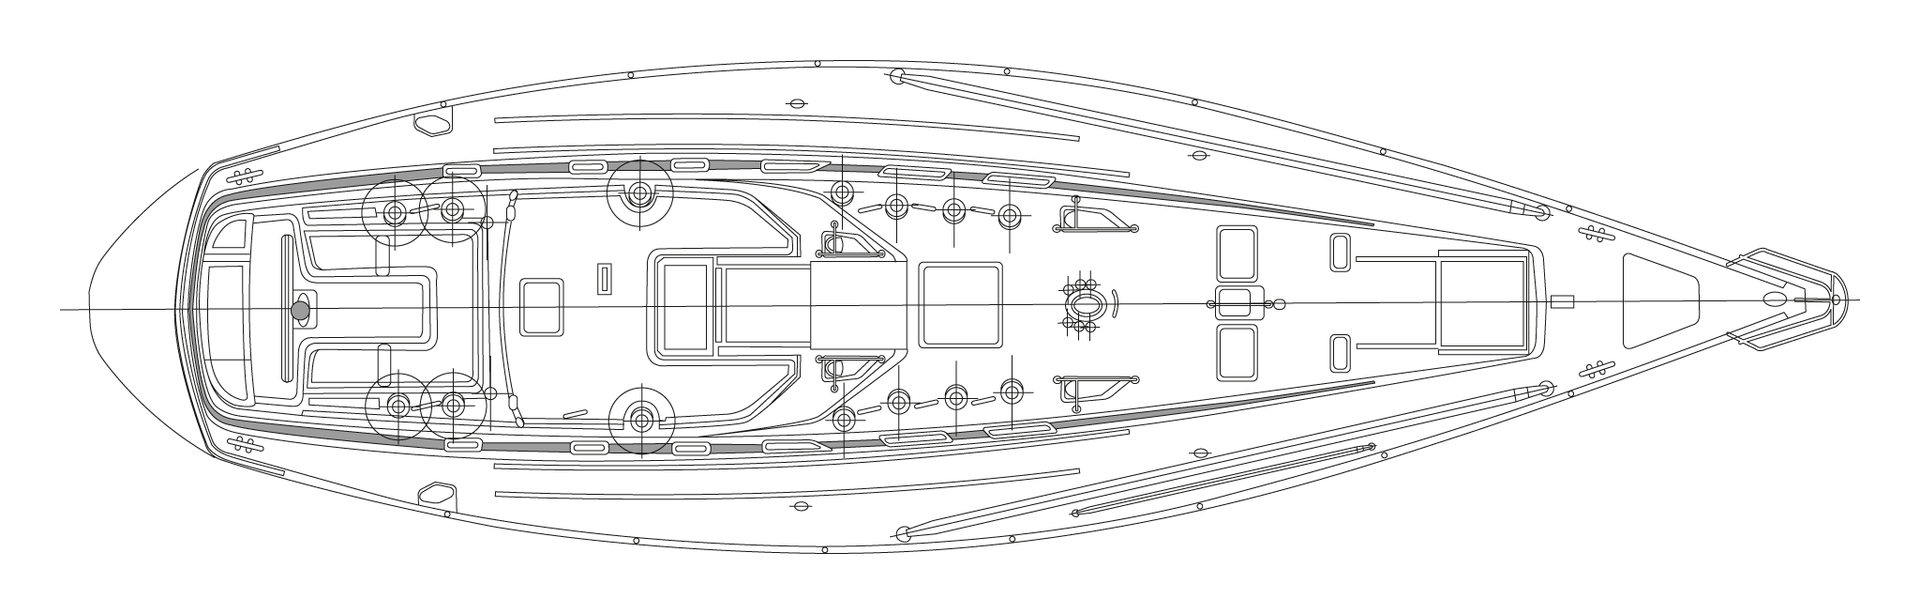 Swan 59 Deck Layout.png